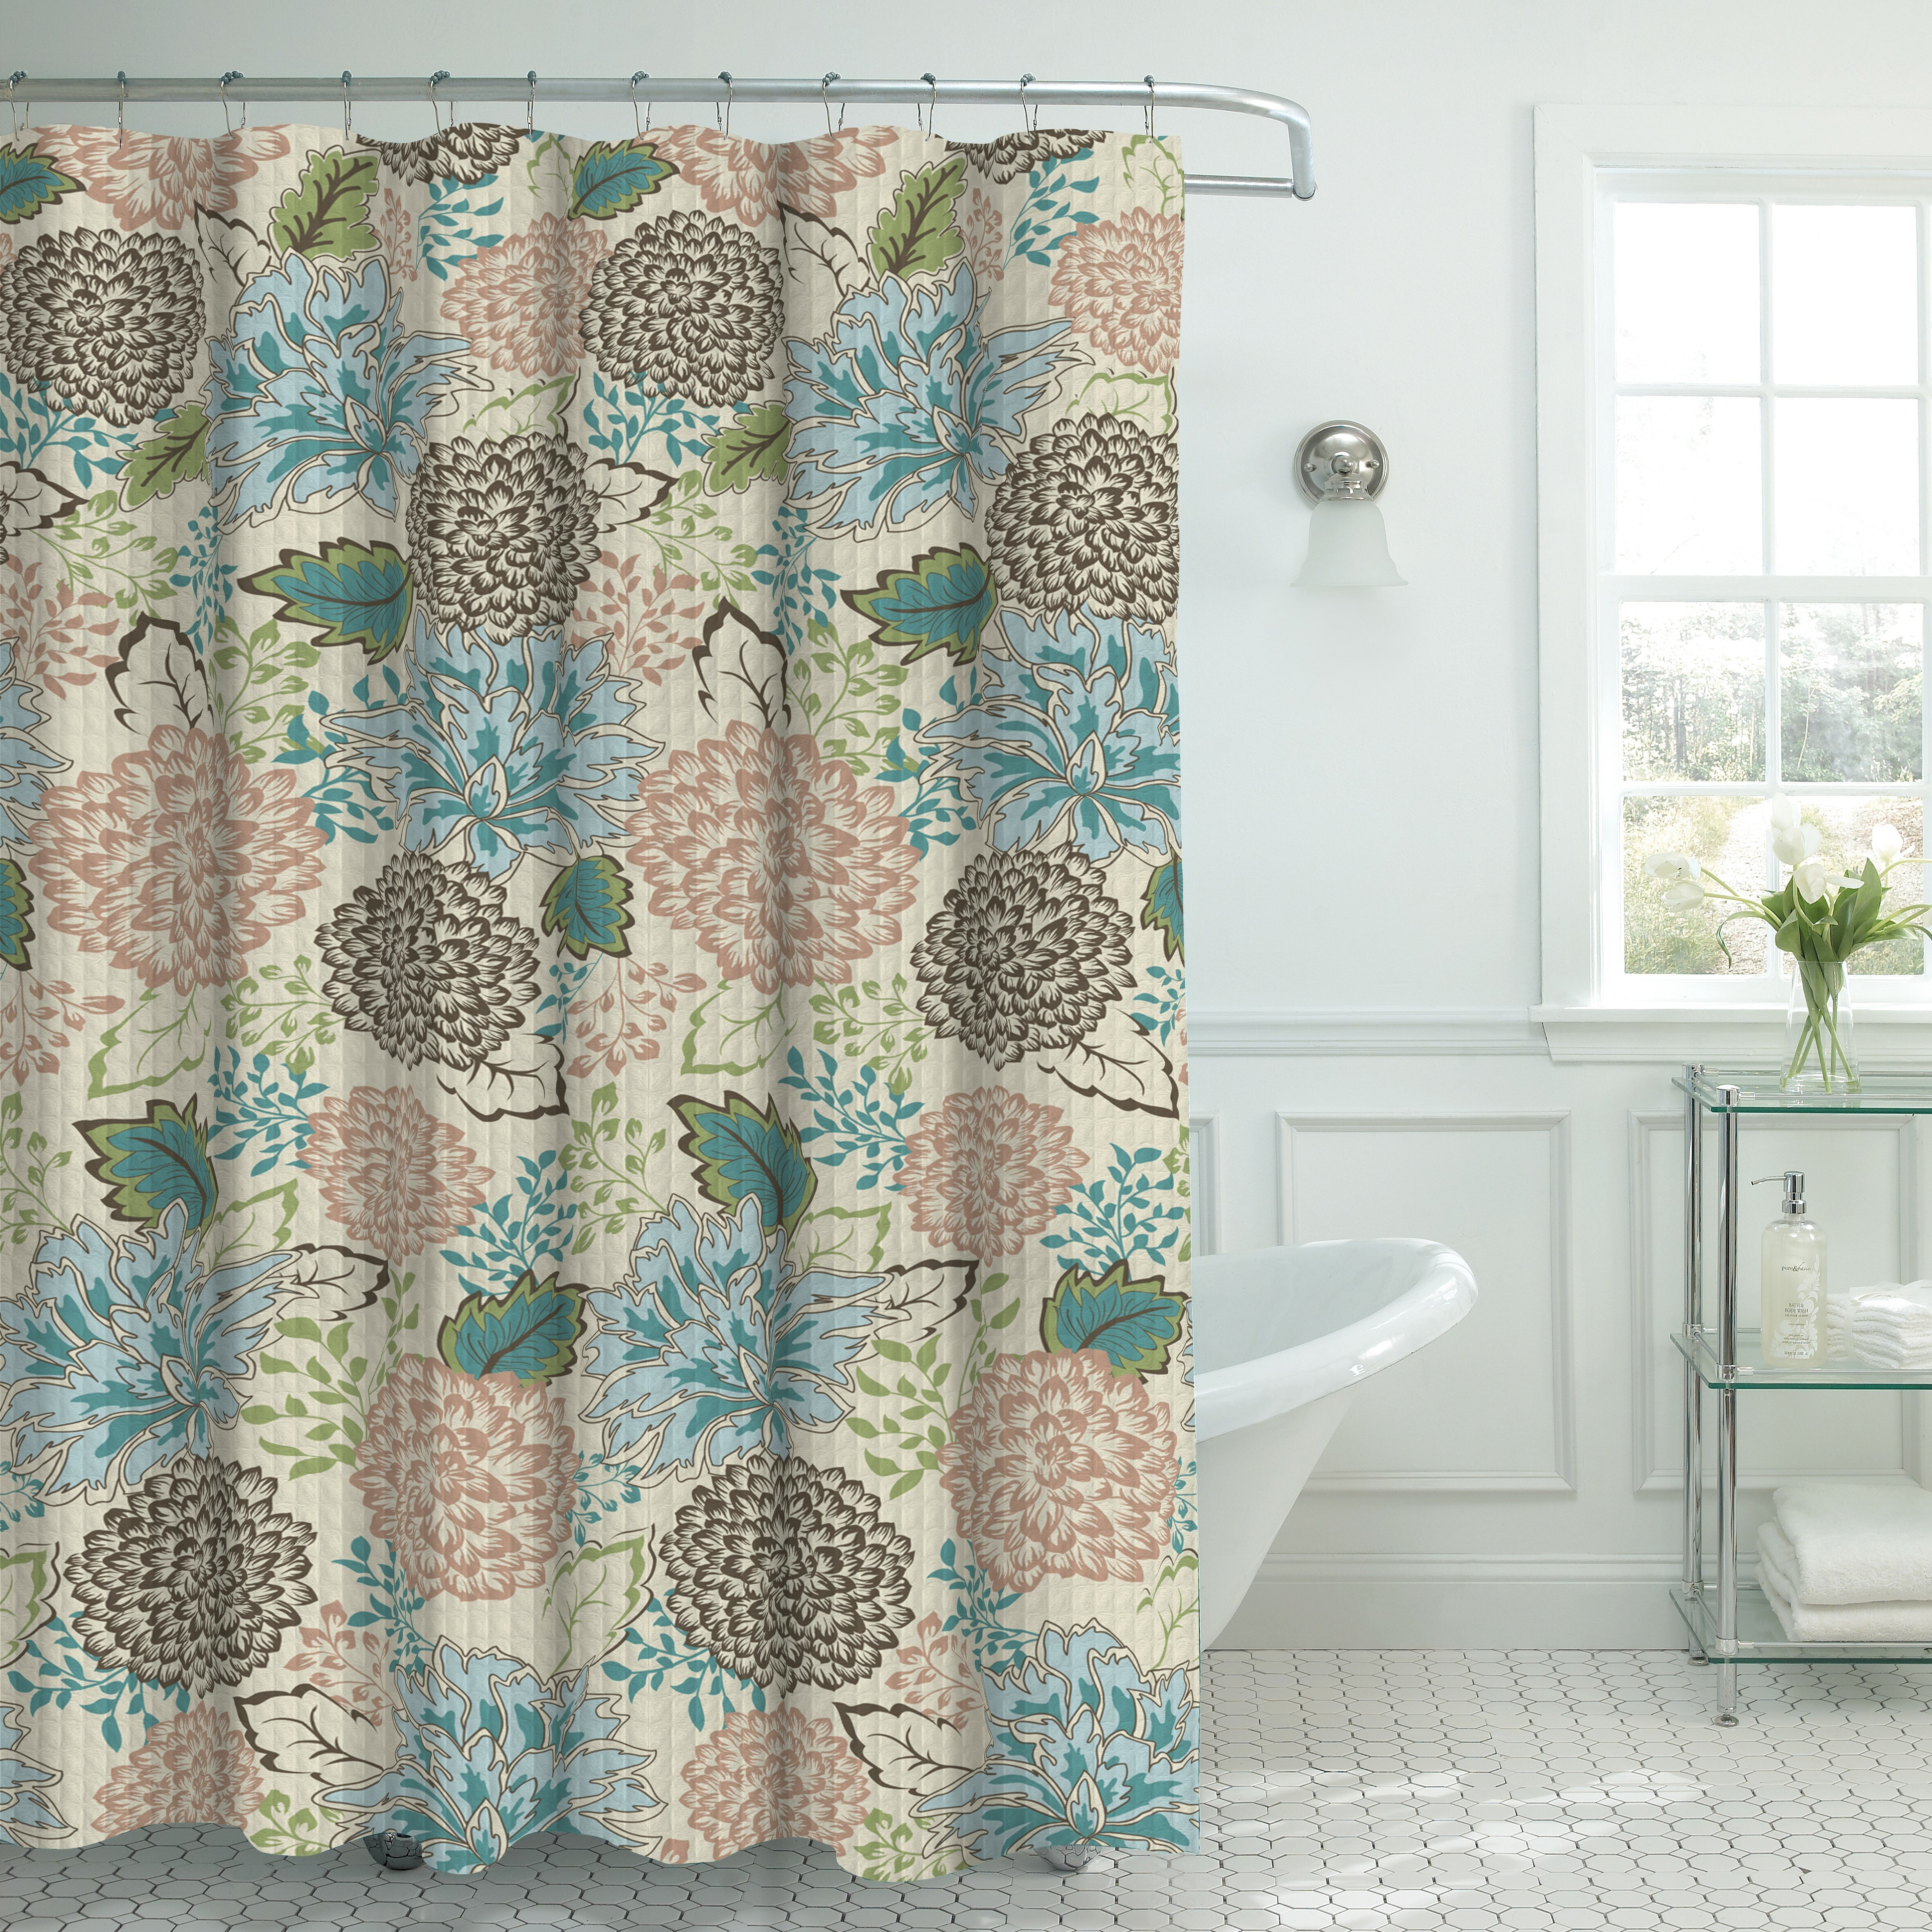 Bath Studio Oxford Fabric Weave Textured Floral Shower Curtain Set U0026  Reviews | Wayfair